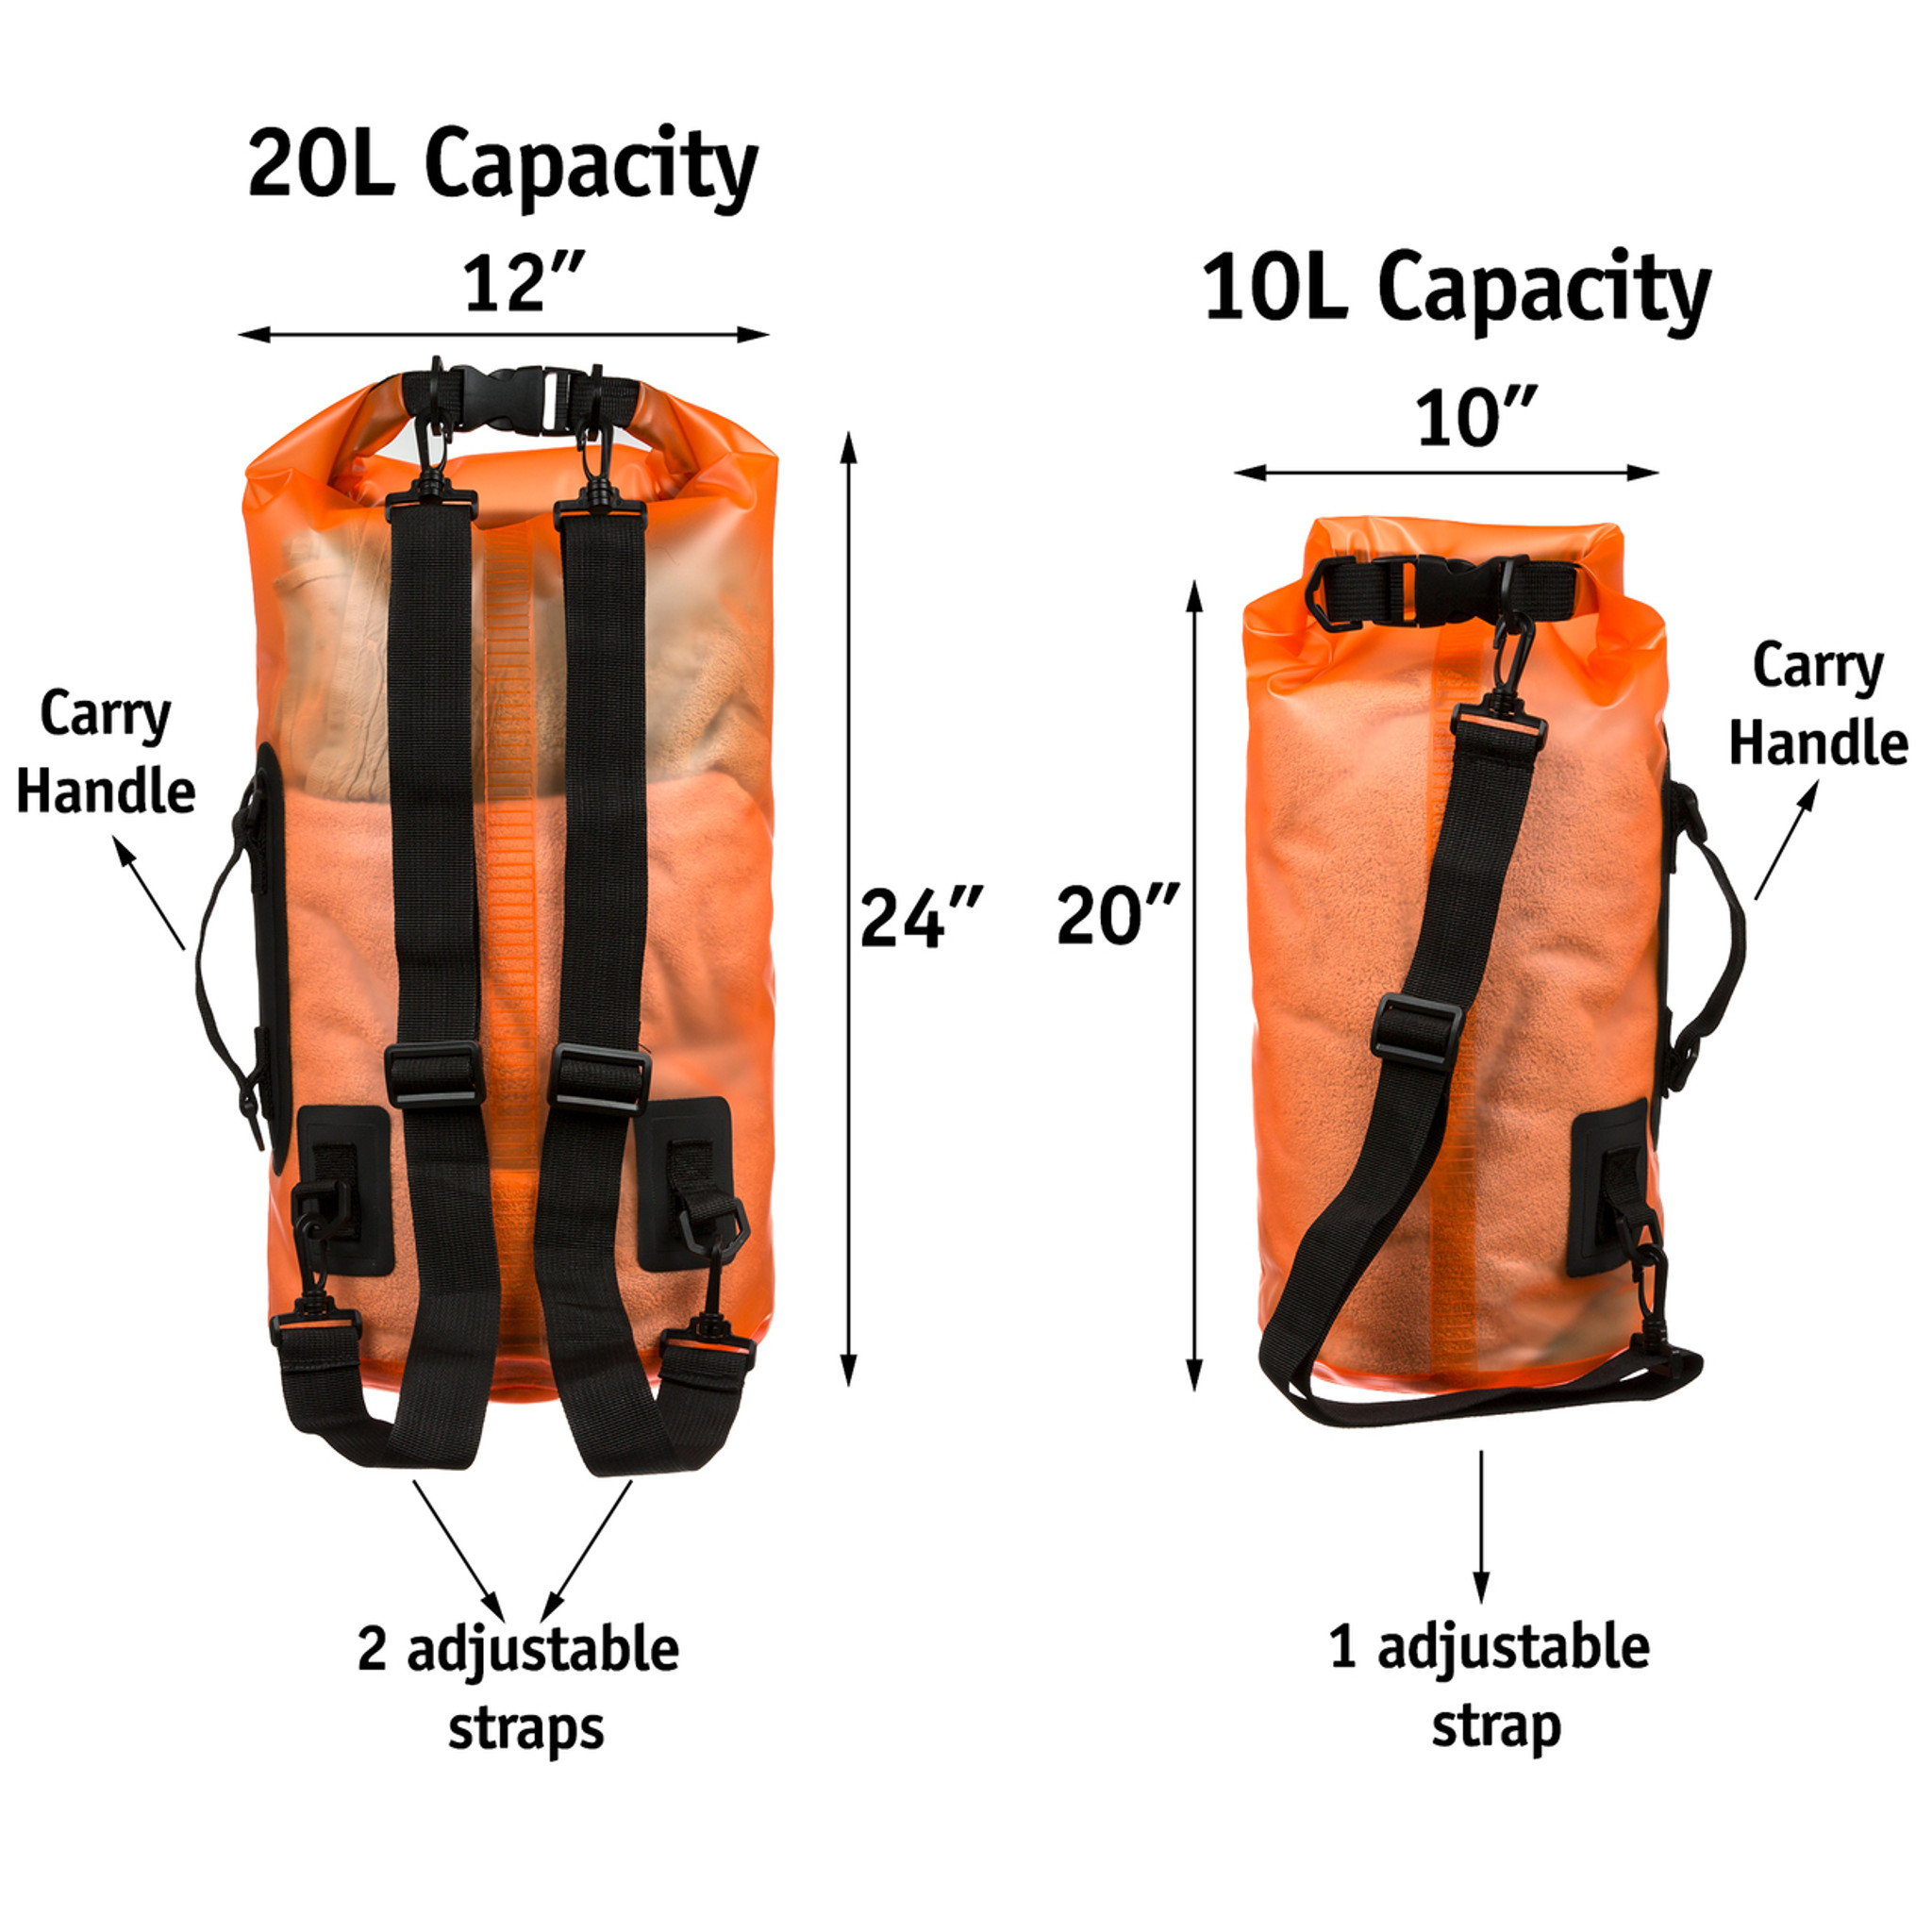 Premium Waterproof Dry Bag By Sandshark Transpa 10 20 Liter Floating Sack For Boating Camping